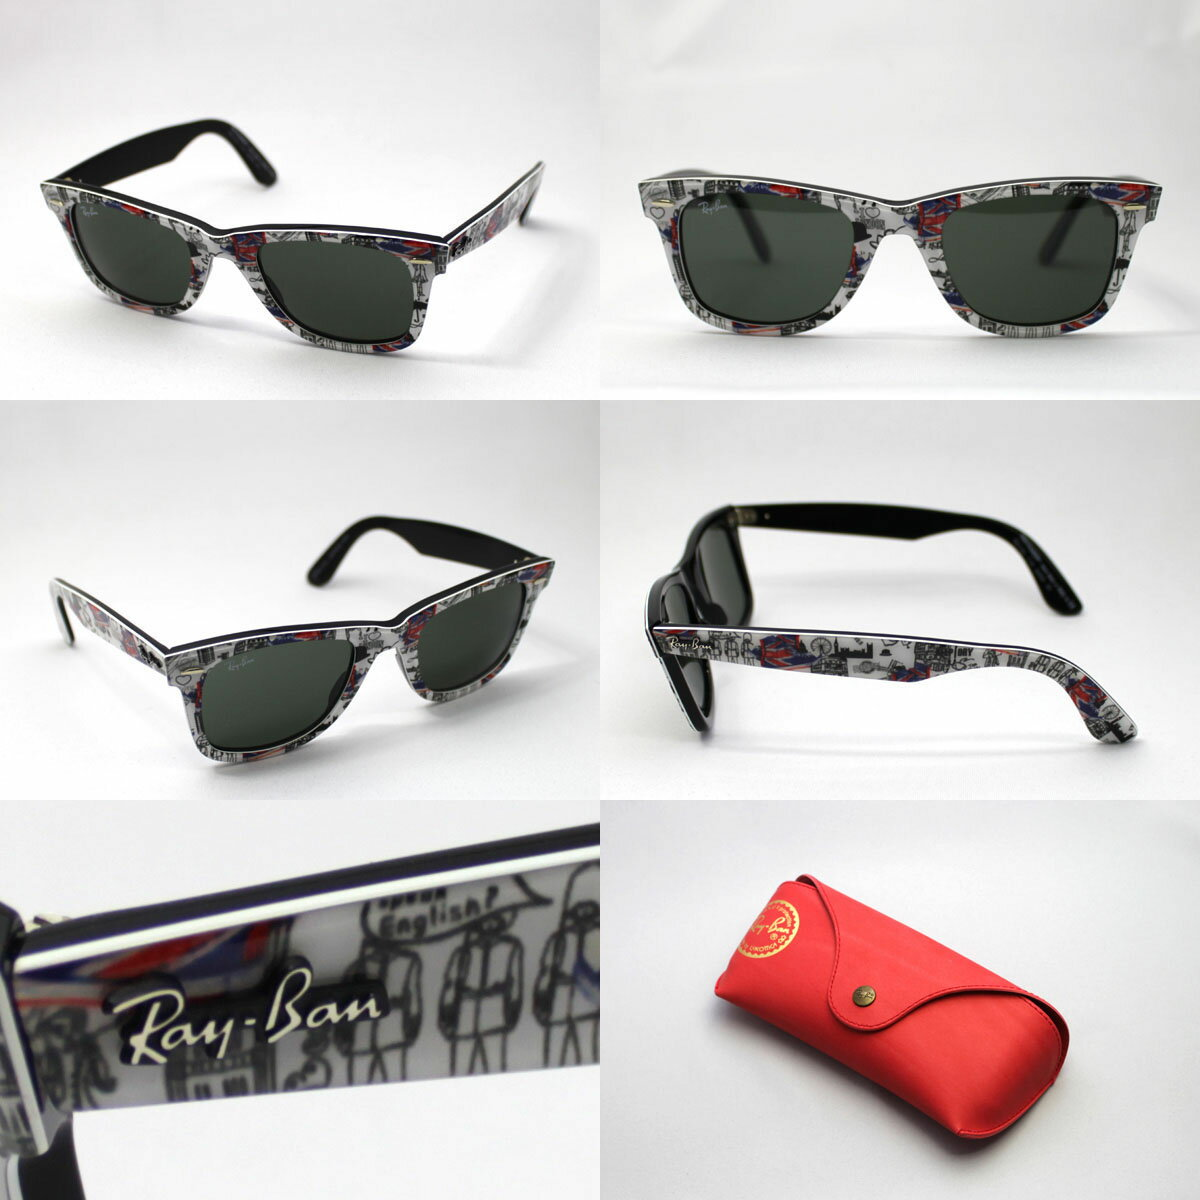 Ray-Ban Sunglasses. Style, tradition and freedom of expression are the key values underpinning the philosophy of Ray-Ban, for generations the undisputed world leader in sun and prescription glasses. Ray-Ban immediately made a name for itself thanks to the absolute quality and authenticity of its eyewear.